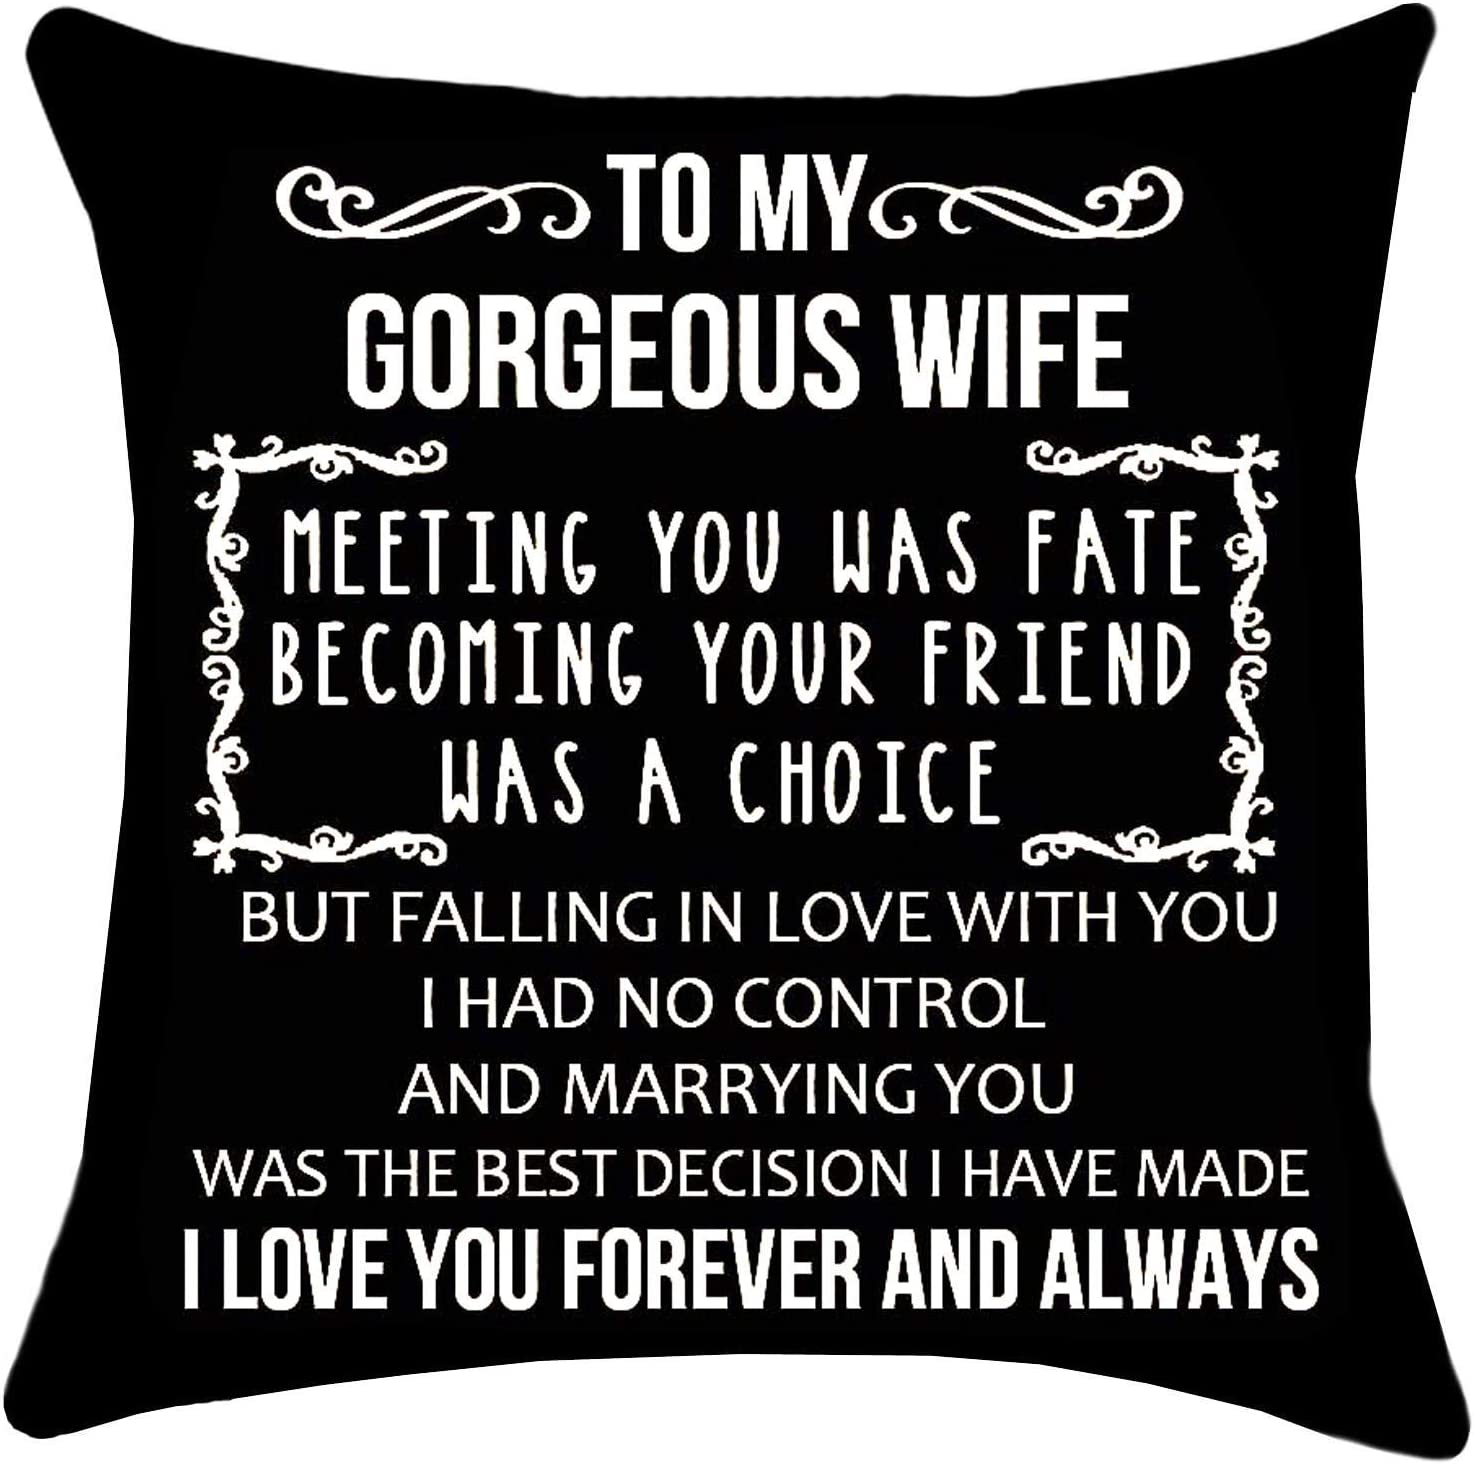 Zepolu to My Gorgeous Wife Throw Pillow Covers 18 x 18 Inch, Double Sided Cotton Linen Black Gift Pillowcases for Birthday Anniversary Wedding, Square Cushion Covers for Sofa Chair Home Office Decor